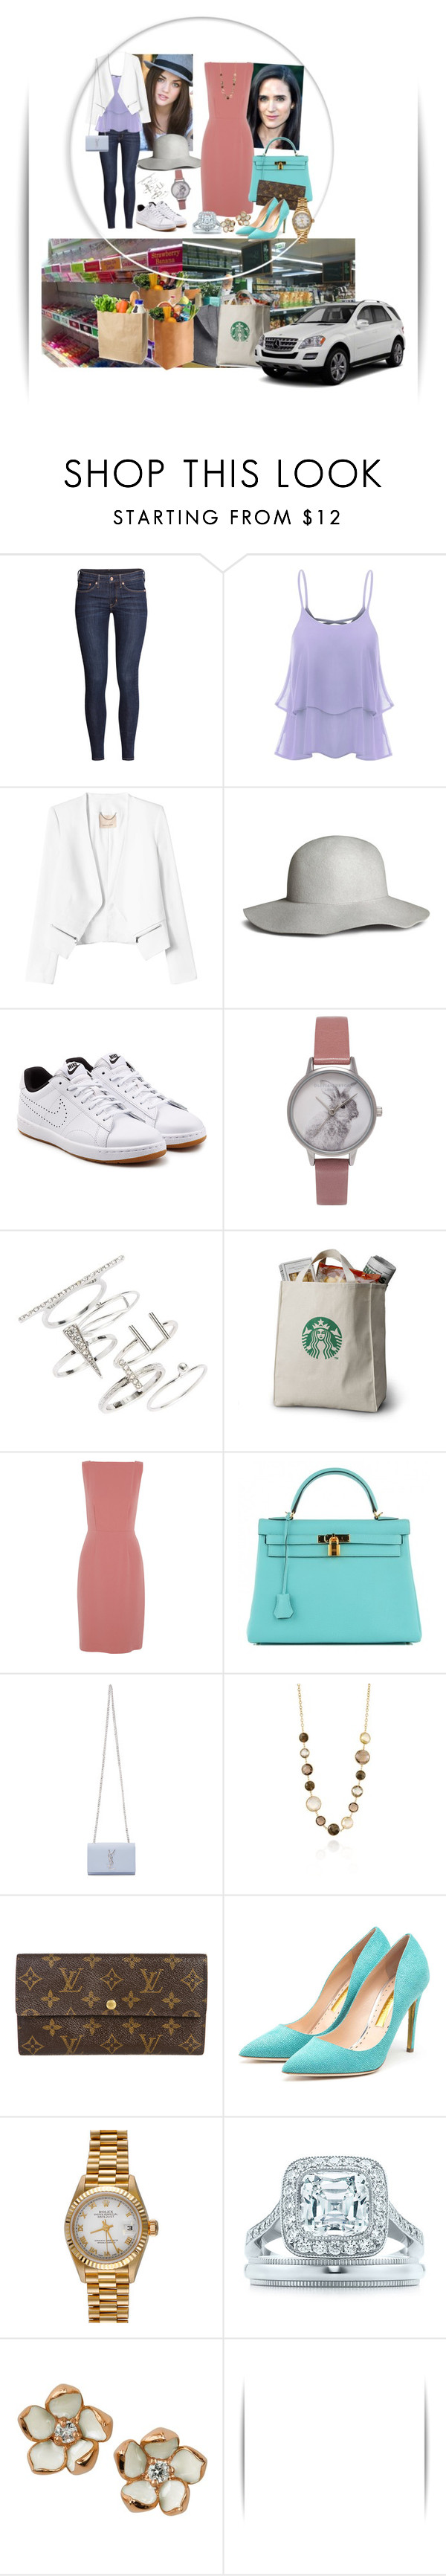 """""""Shopping for home with my mom"""" by medicicapetiens on Polyvore featuring H&M, Rebecca Taylor, NIKE, Olivia Burton, Topshop, Burberry, Hermès, Yves Saint Laurent, PIARA by Elaine J and Louis Vuitton"""